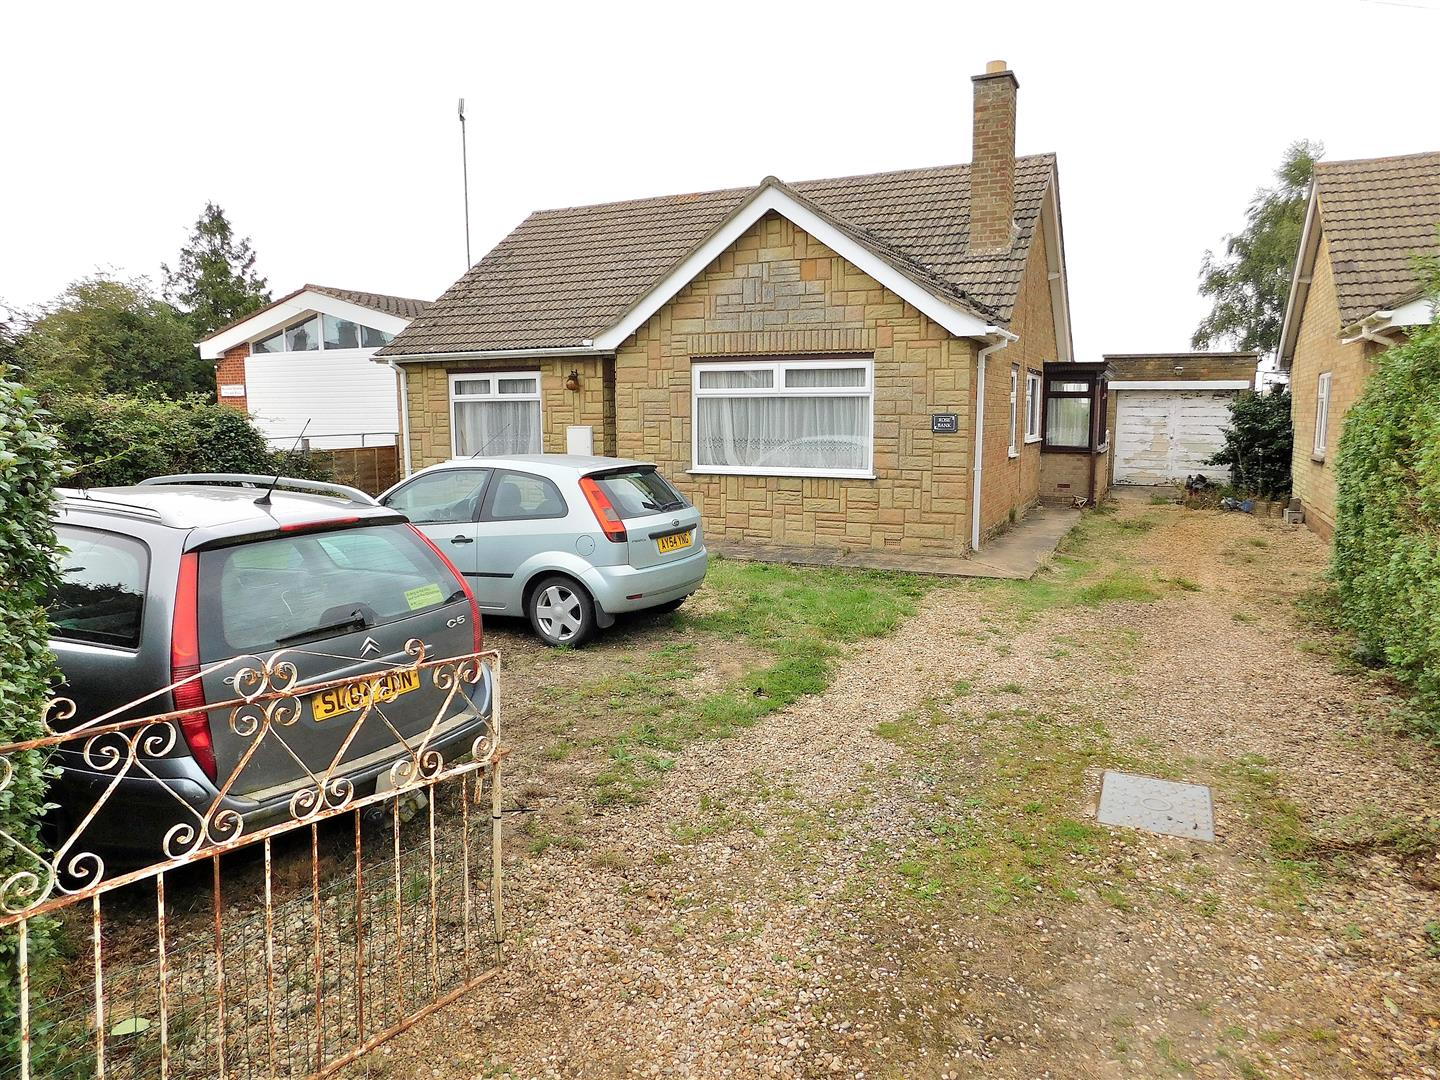 2 bed detached bungalow for sale in Wisbech, PE14 7QD, PE14